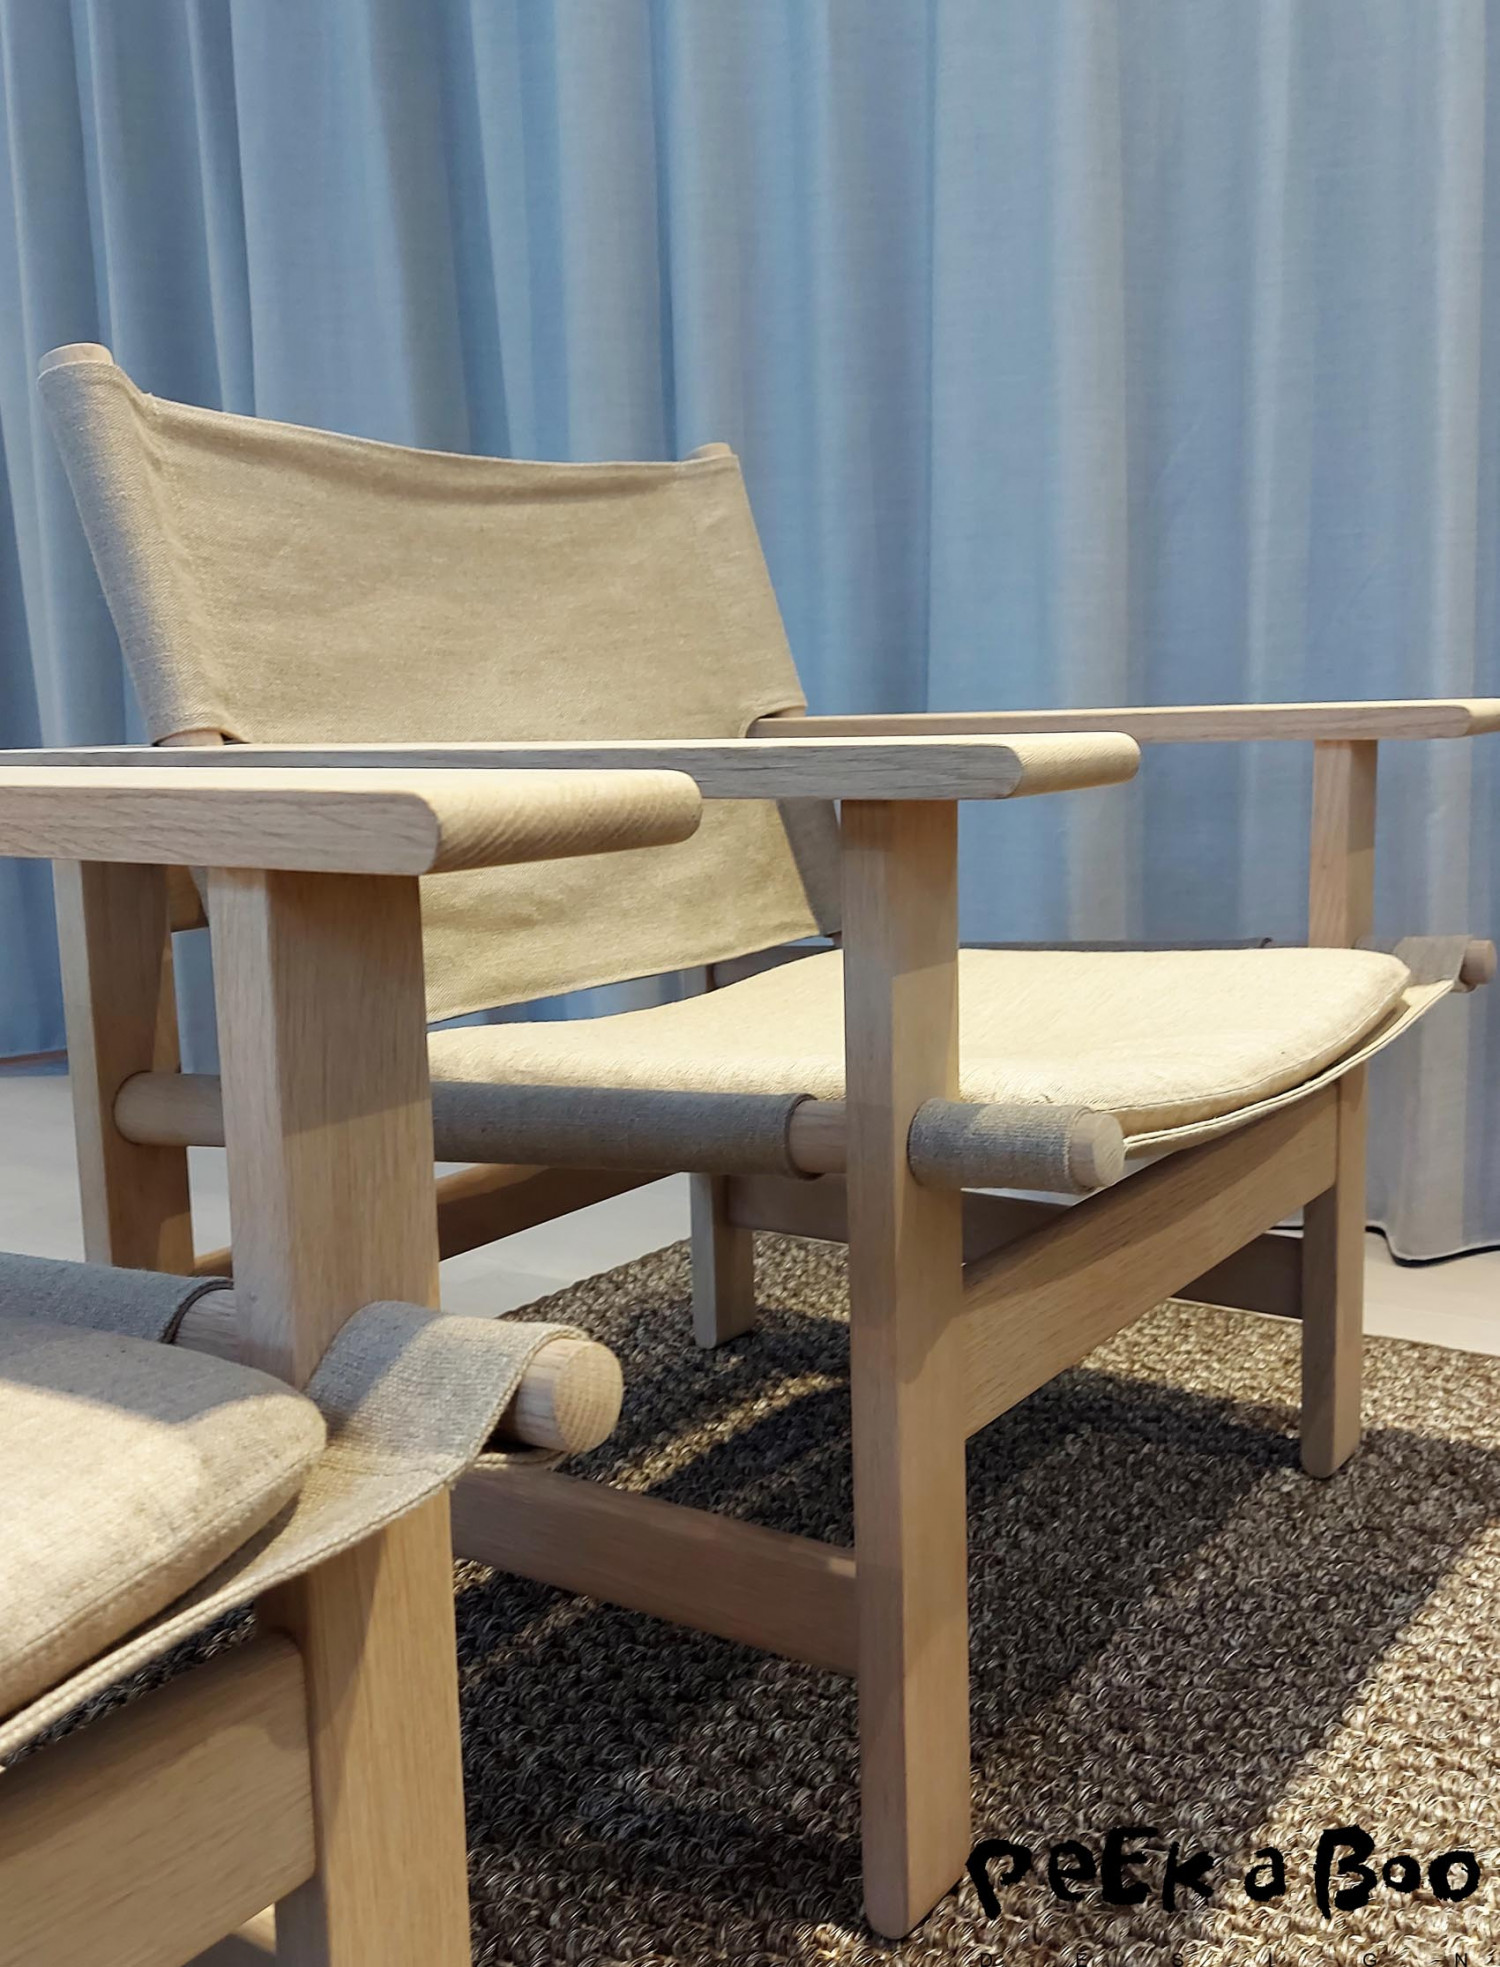 """And this Børge Mogensen chair, is definitely a """"must-have"""" in the summer cabin."""